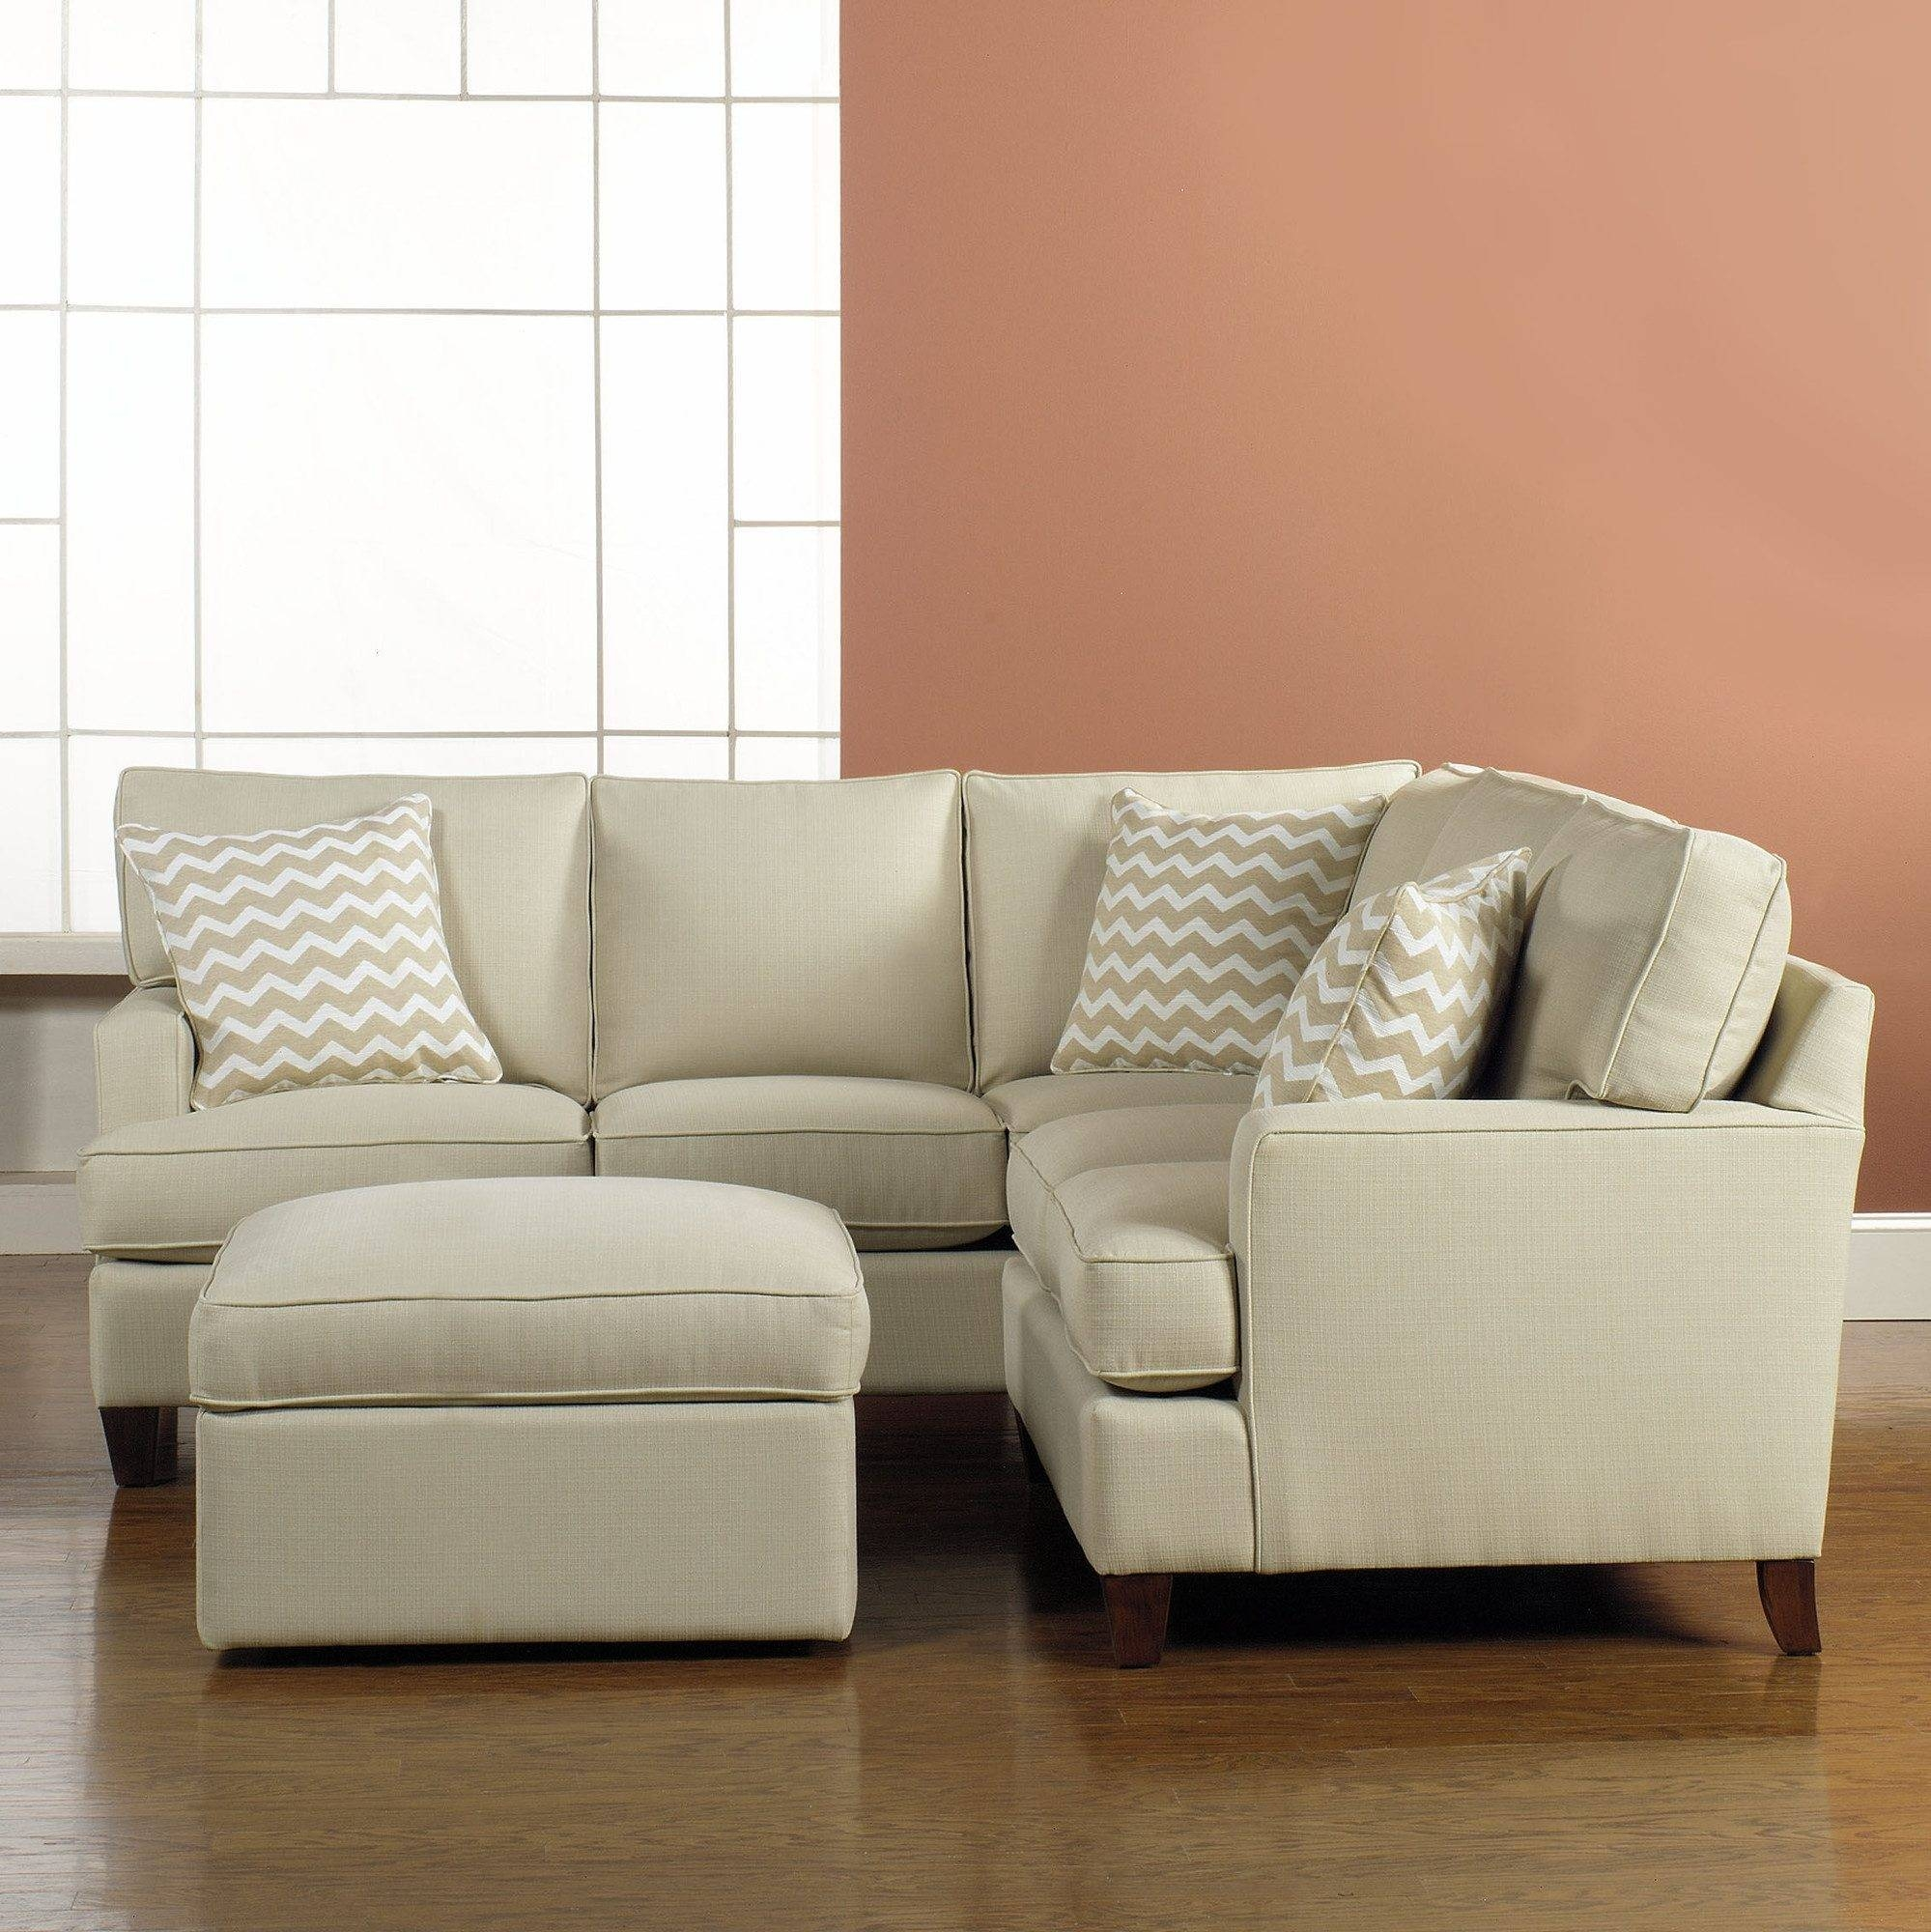 Furniture Home : Appealing Small L Shaped Sectional Sofa About in Elegant Sectional Sofas (Image 13 of 30)